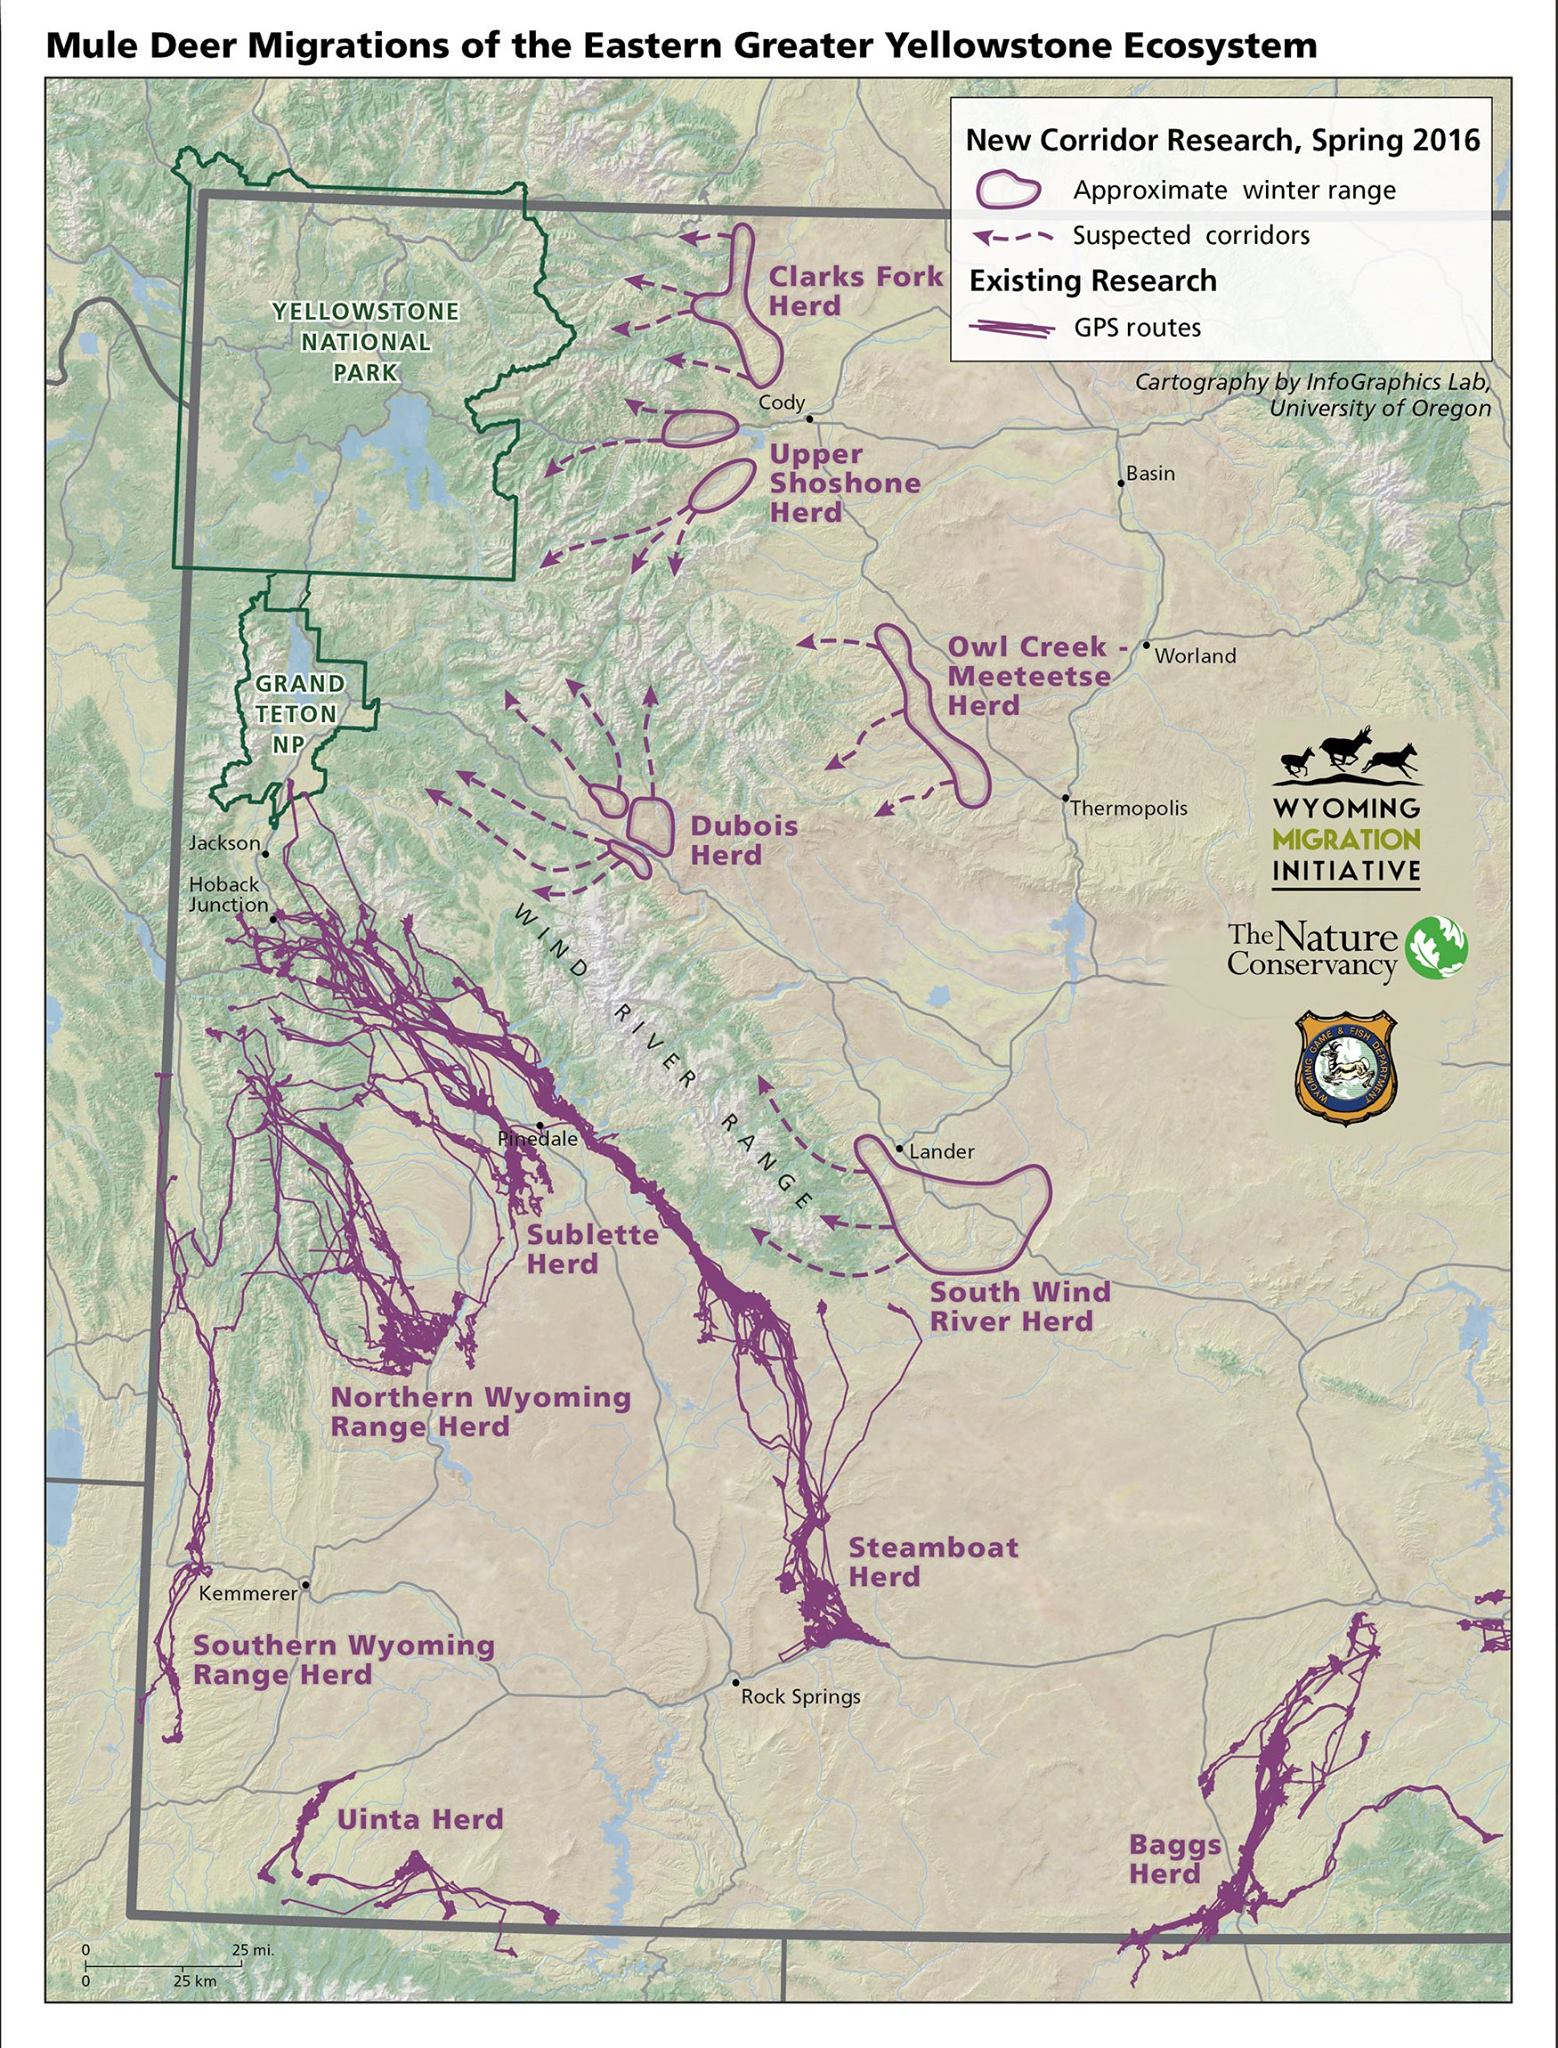 BIOLOGISTS LAUNCH STUDY OF GREATER YELLOWSTONE MULE DEER MIGRATIONS | Wyoming Migration Initiative